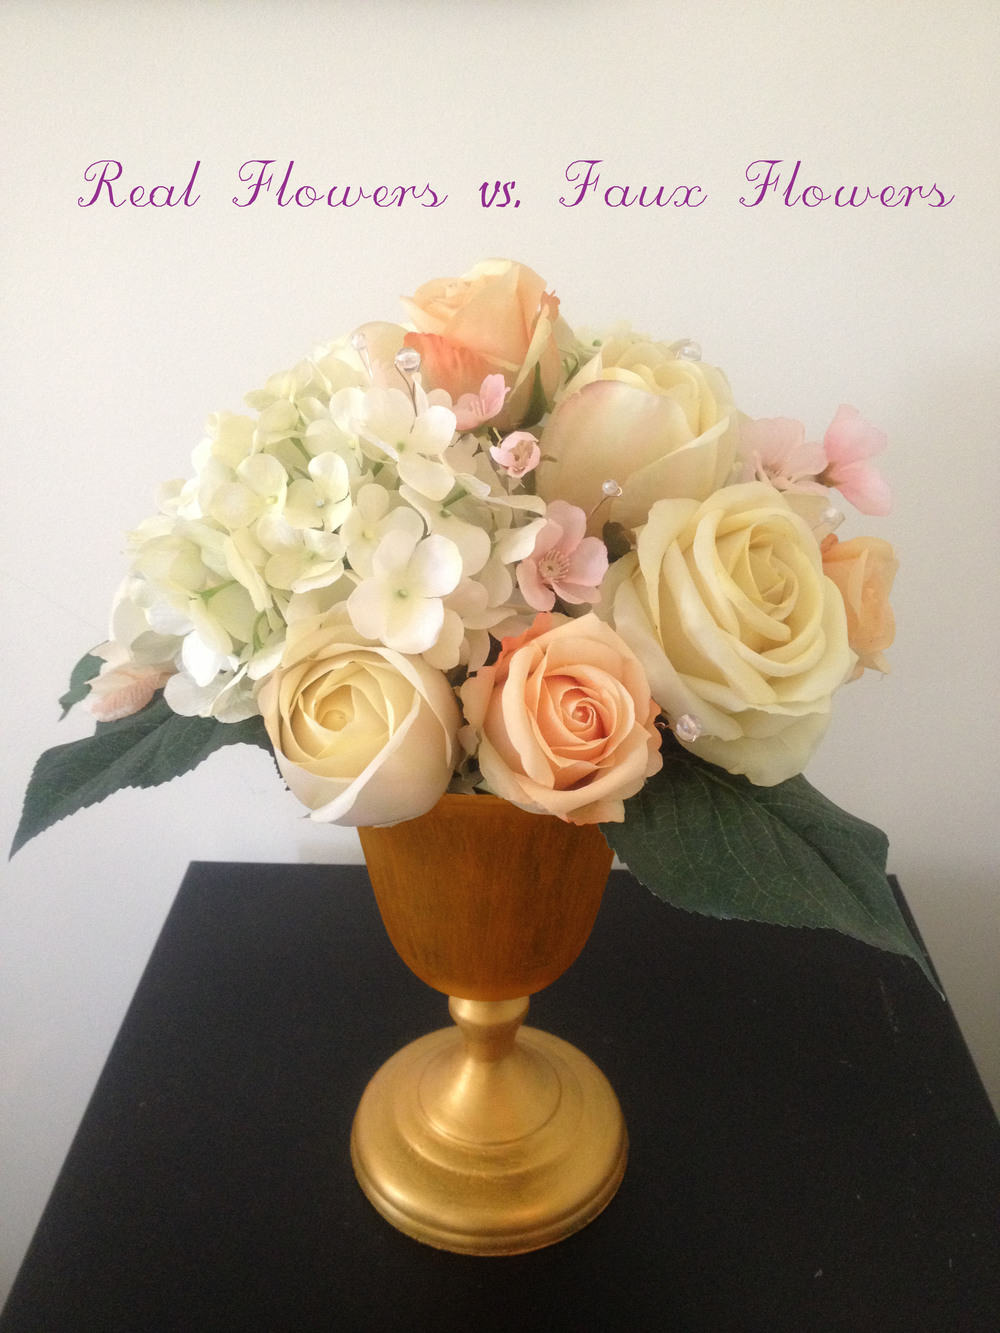 Faux Flower Vs Real Flowers Evelisa Floral Design New York